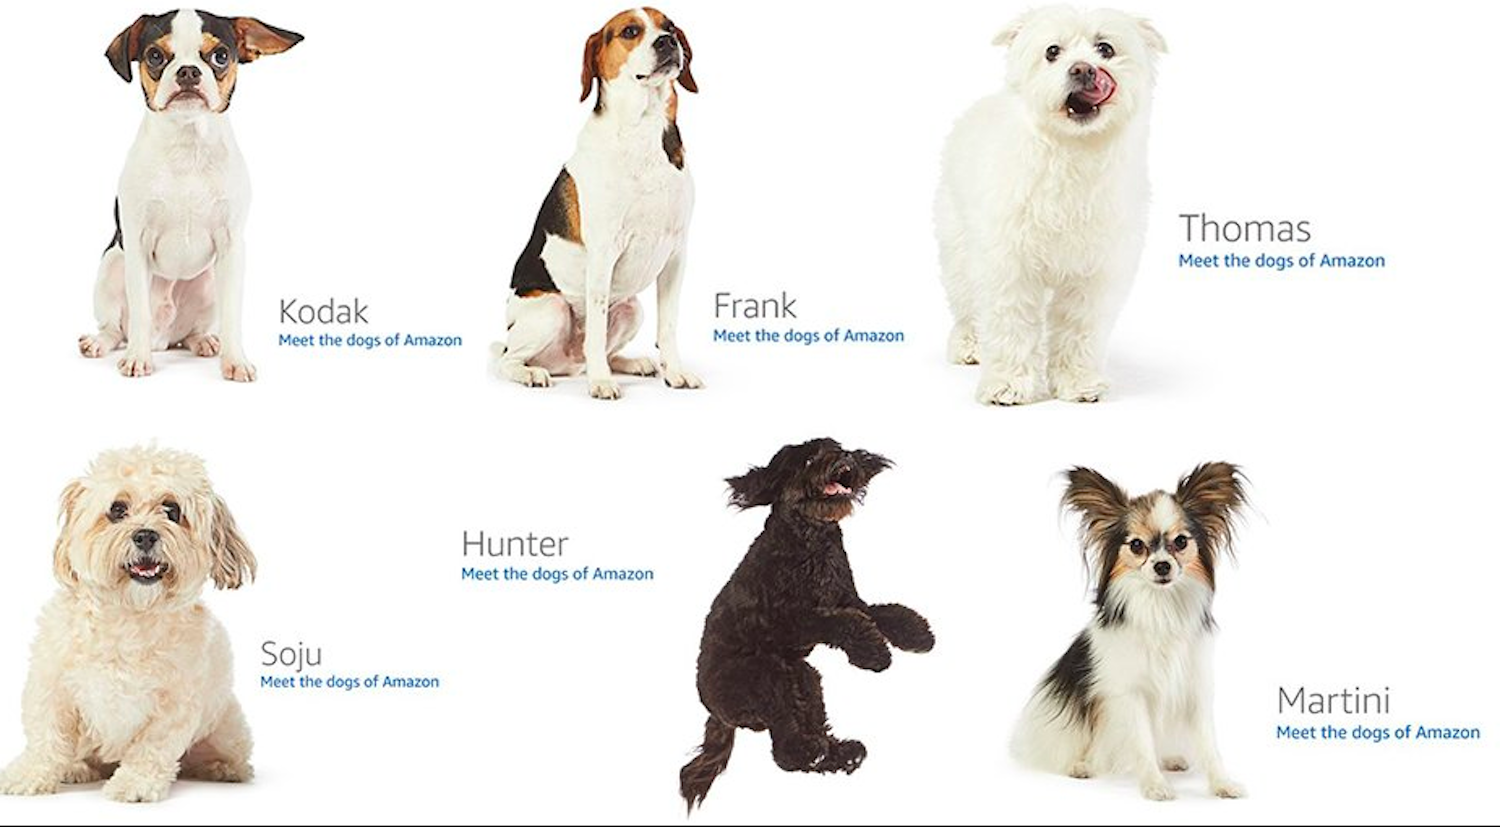 Why did Amazon have dog photos on error pages [Video]